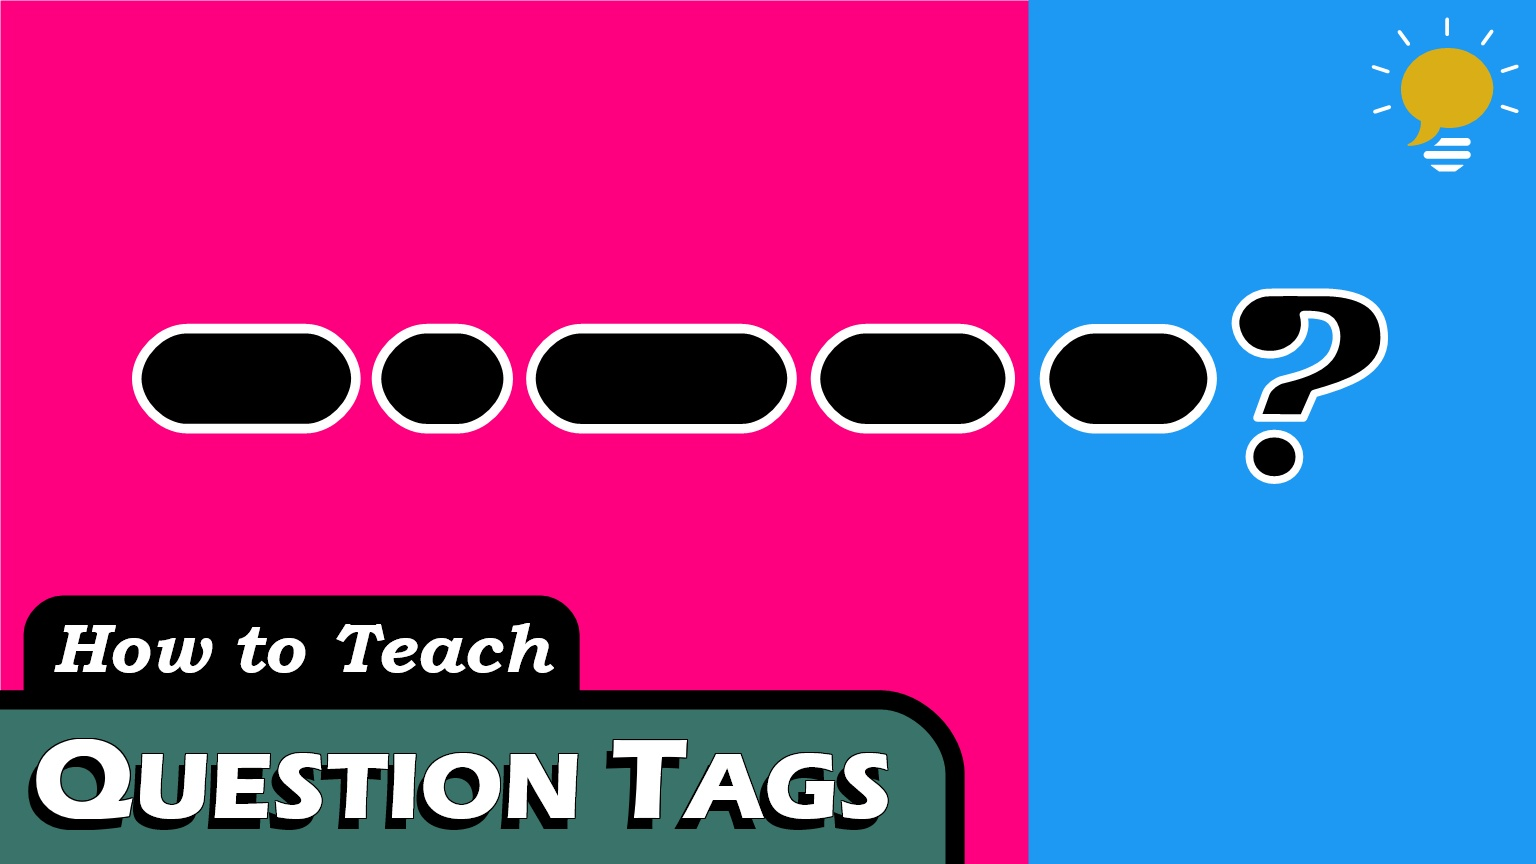 Question Tags - We use Tag Questions when we think we know the answer but are asking for confirmation - they are halfway between yes/no questions and declarative sentences.There are 3 parts to Question Tags, but it depends on how you use them.